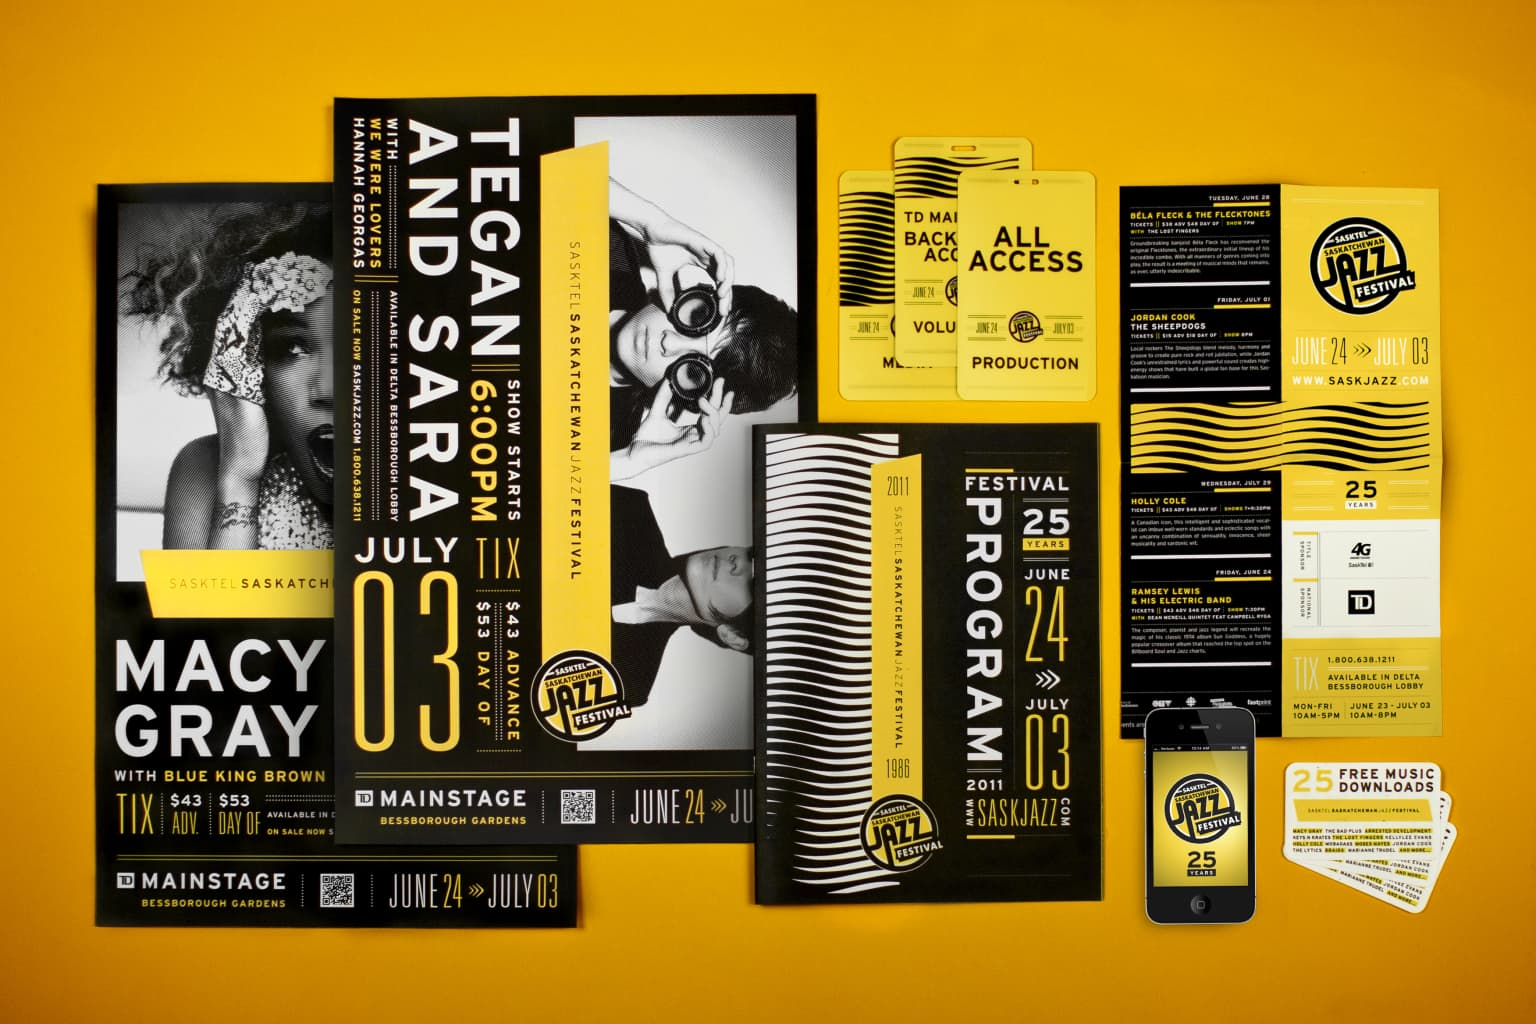 Saskatchewan Jazz Festival Redesign